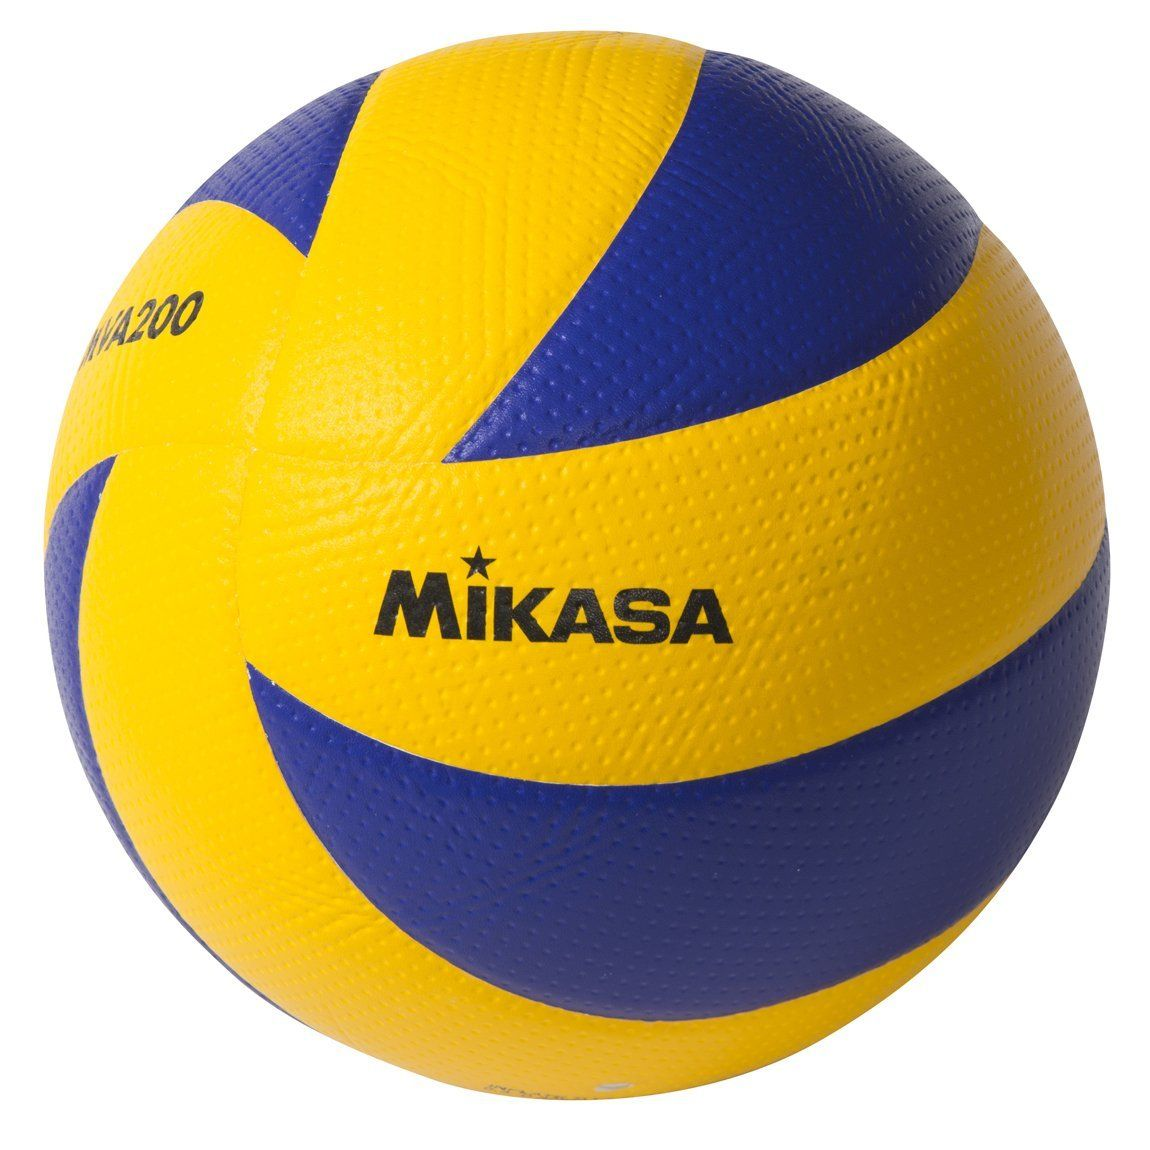 Mikasa Mva200 2008 Beijing 2012 London And 2016 Rio Indoor Olympic Games Ball Blue Yellow Mikasa Volleyball Volleyballs